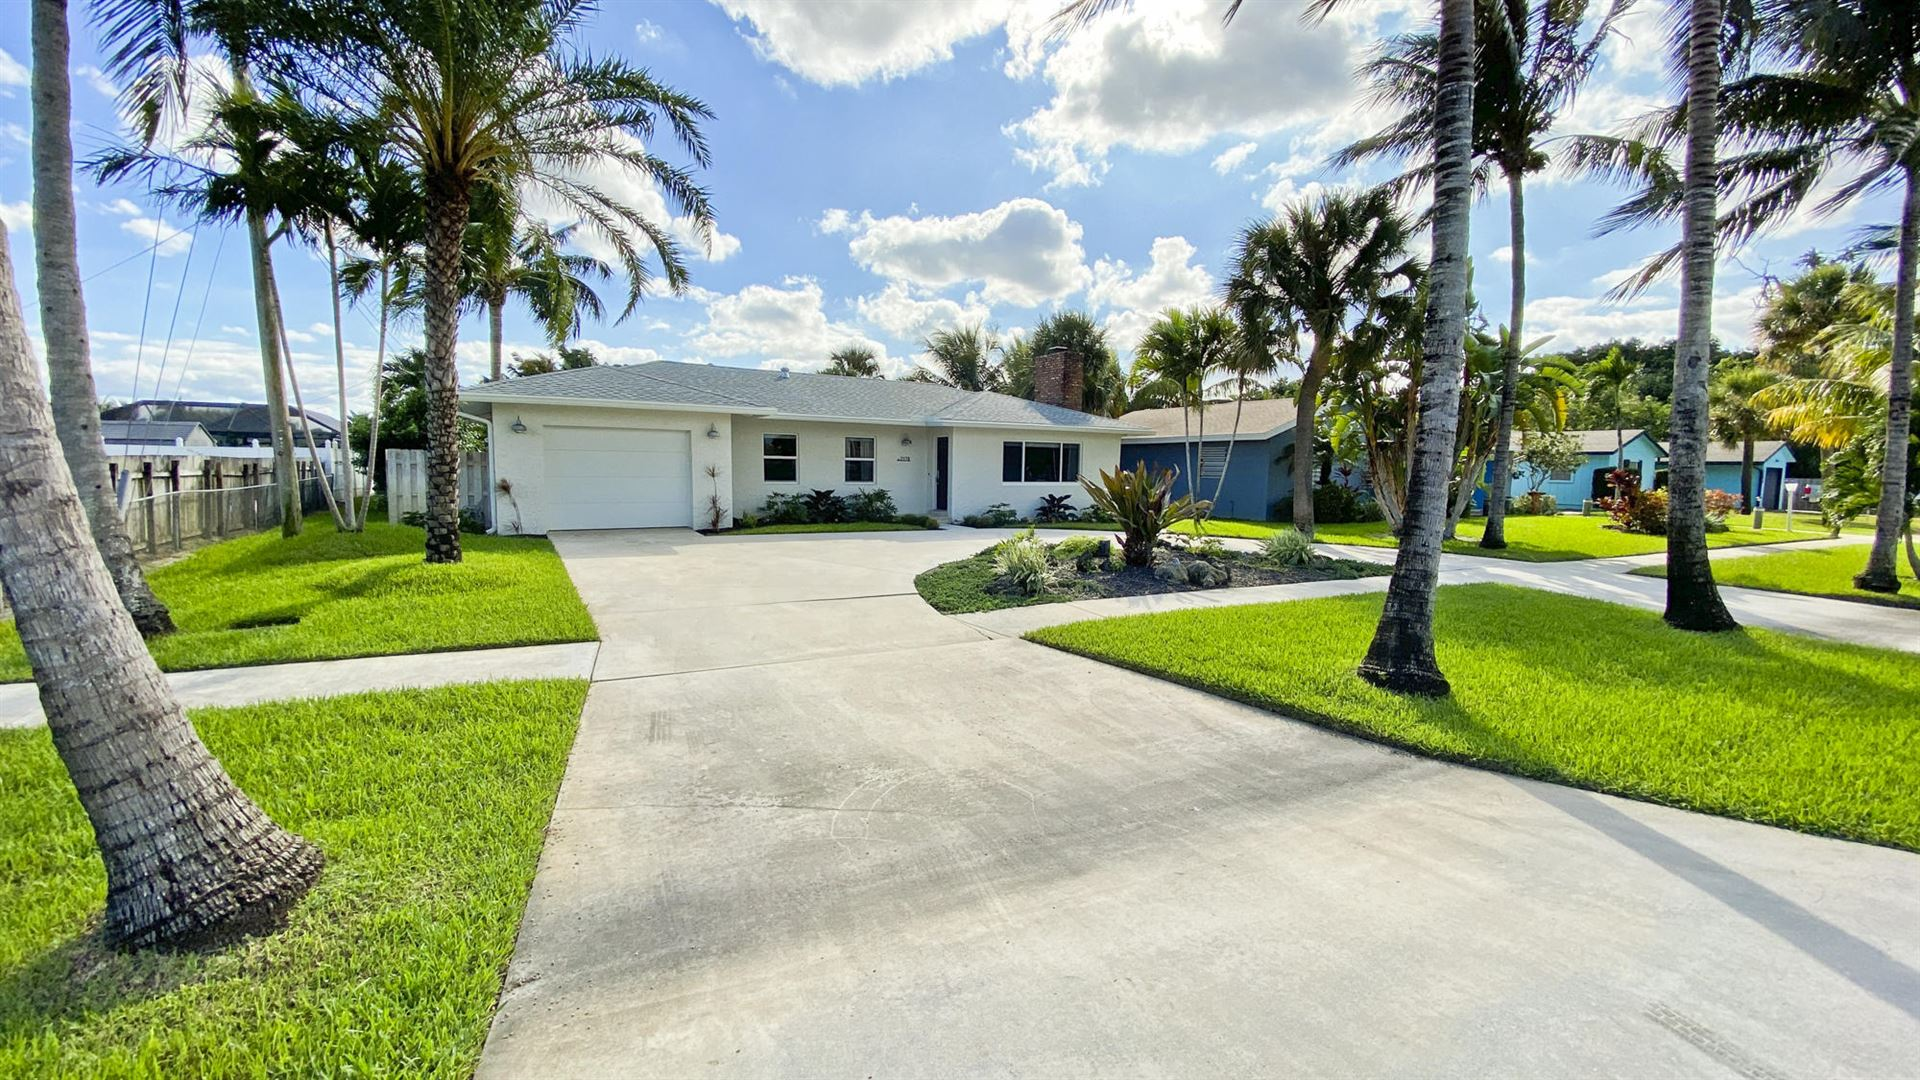 2178 Palmetto Road, West Palm Beach, FL 33406 - #: RX-10655855